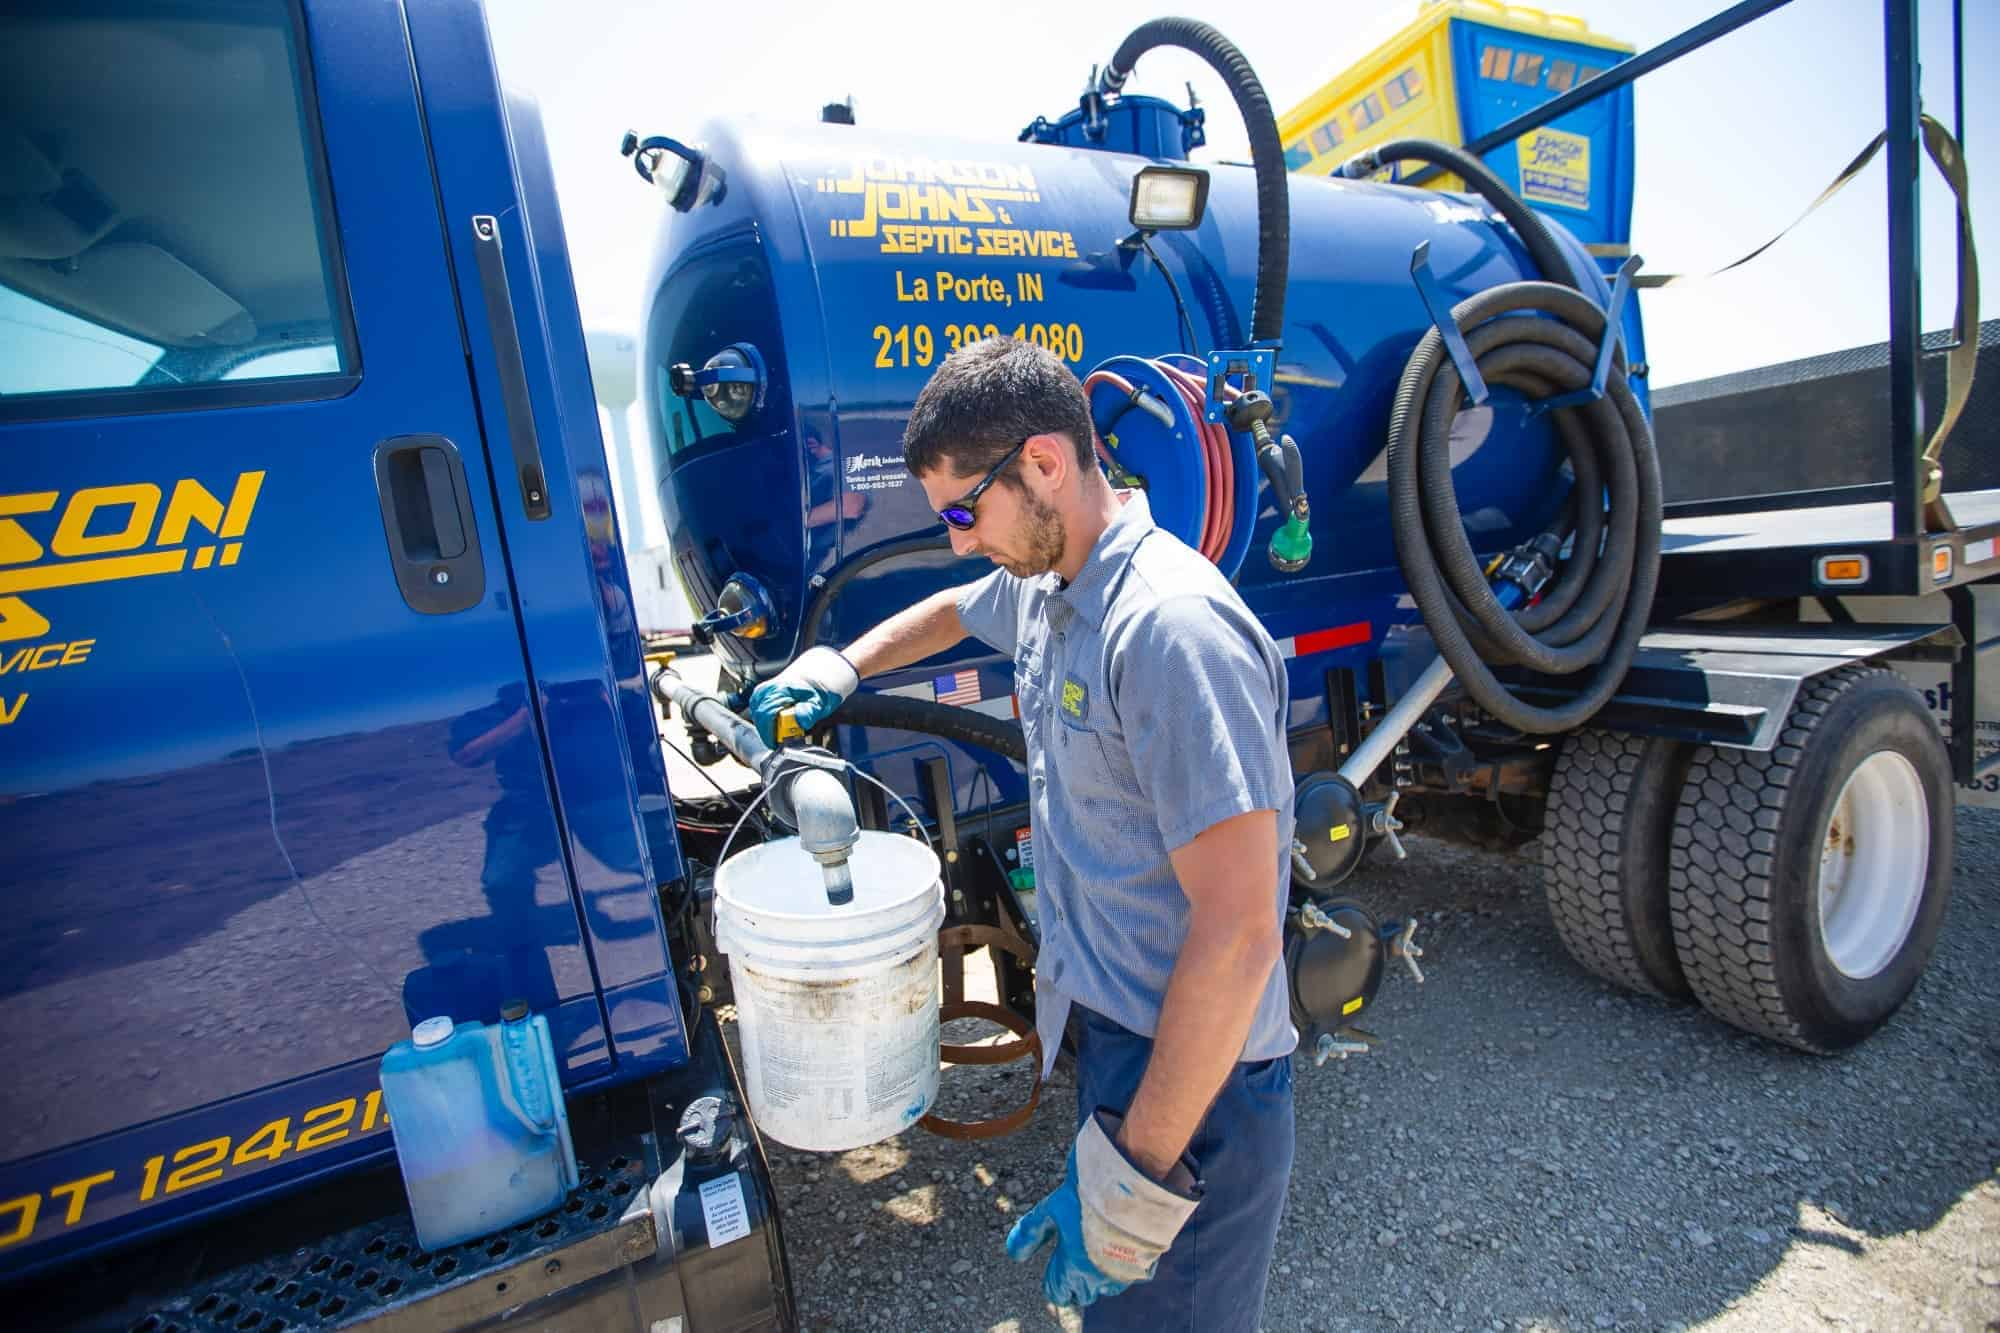 Johnson Johns employee filling a bucket on the side of his truck - Michigan City Septic Services, New Carlisle septic services